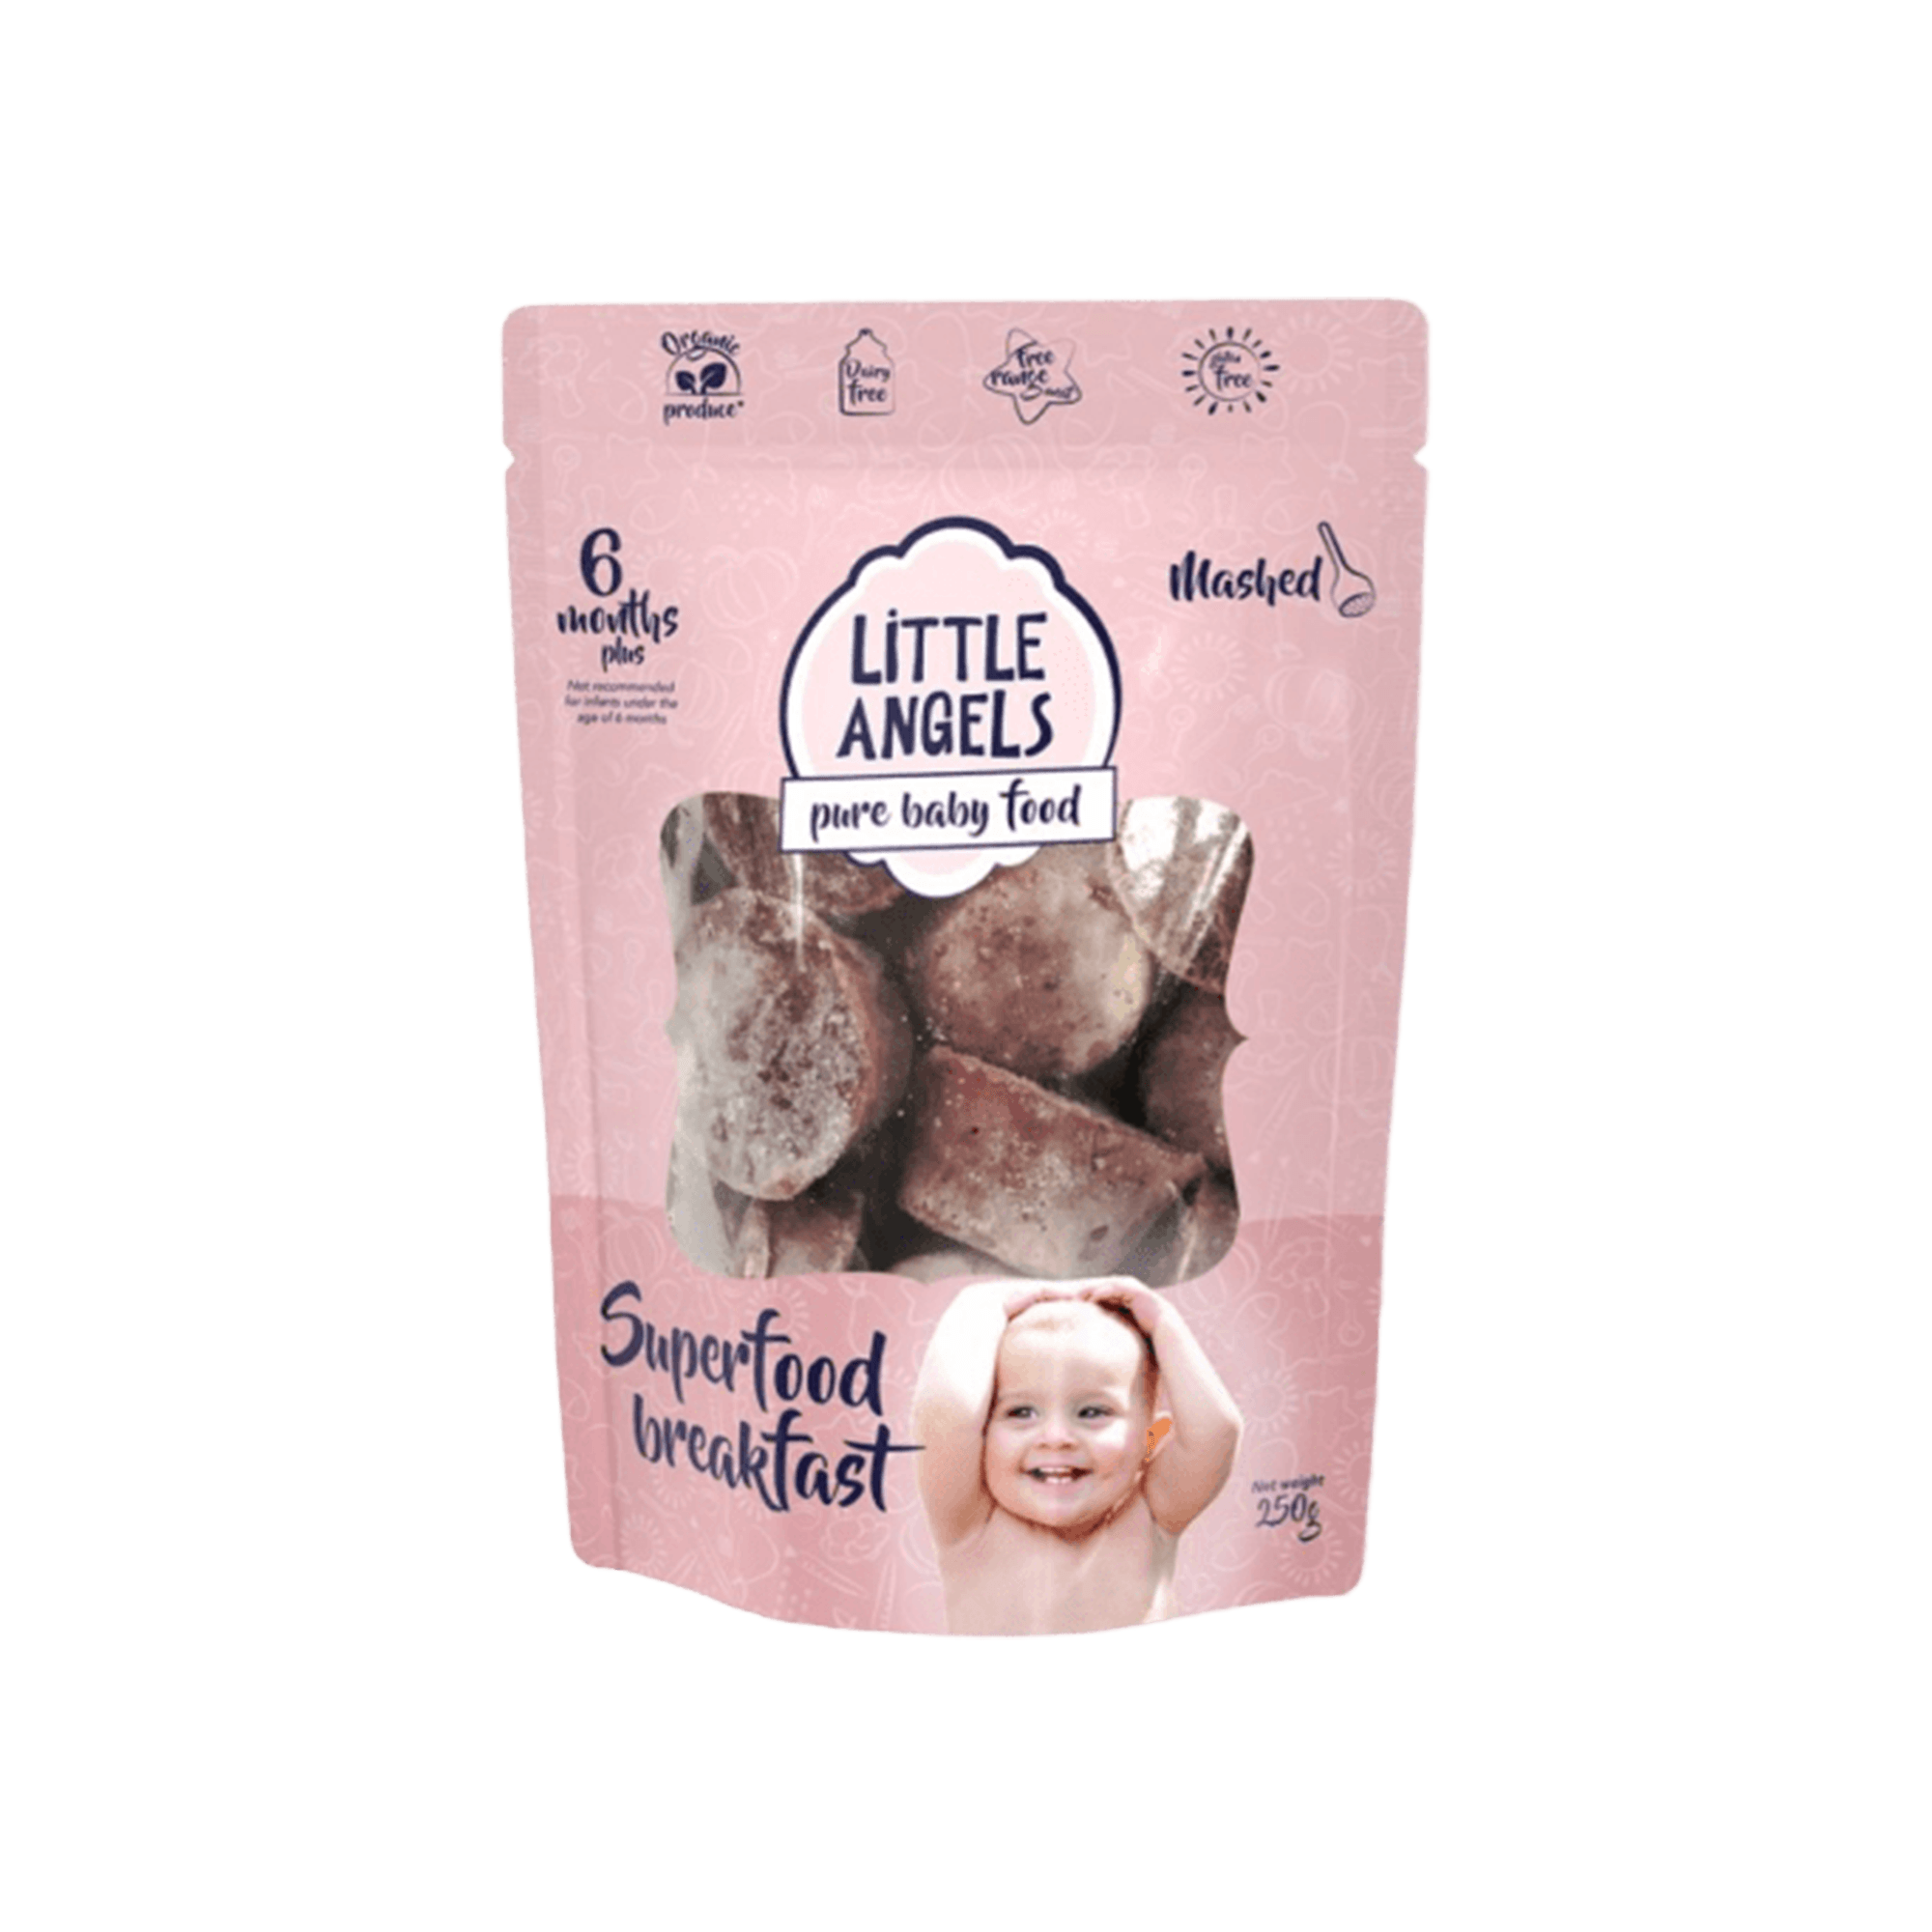 Little Angels Superfood Breakfast